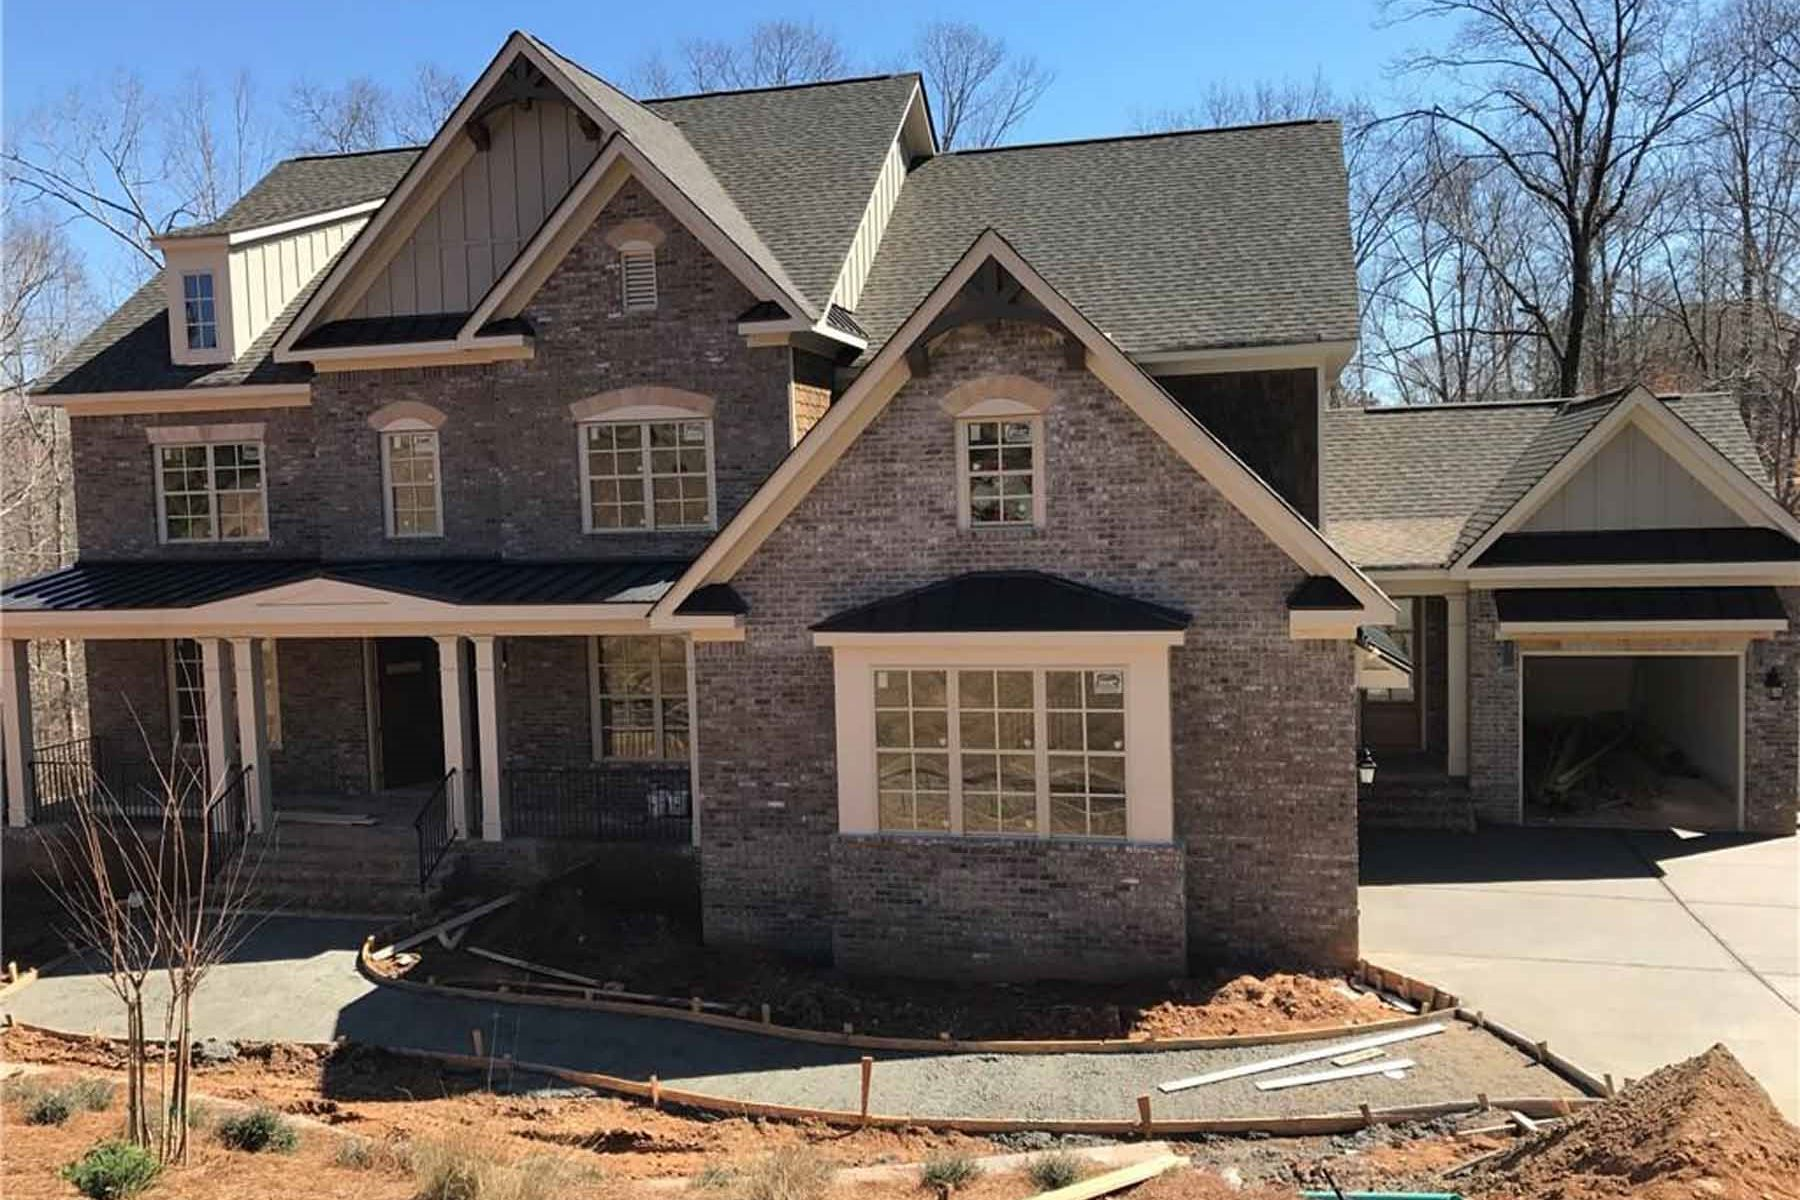 Single Family Home for Sale at Old Word Craftsmanship Meets Modern New Design 13148 Overlook Pass Roswell, Georgia, 30075 United States